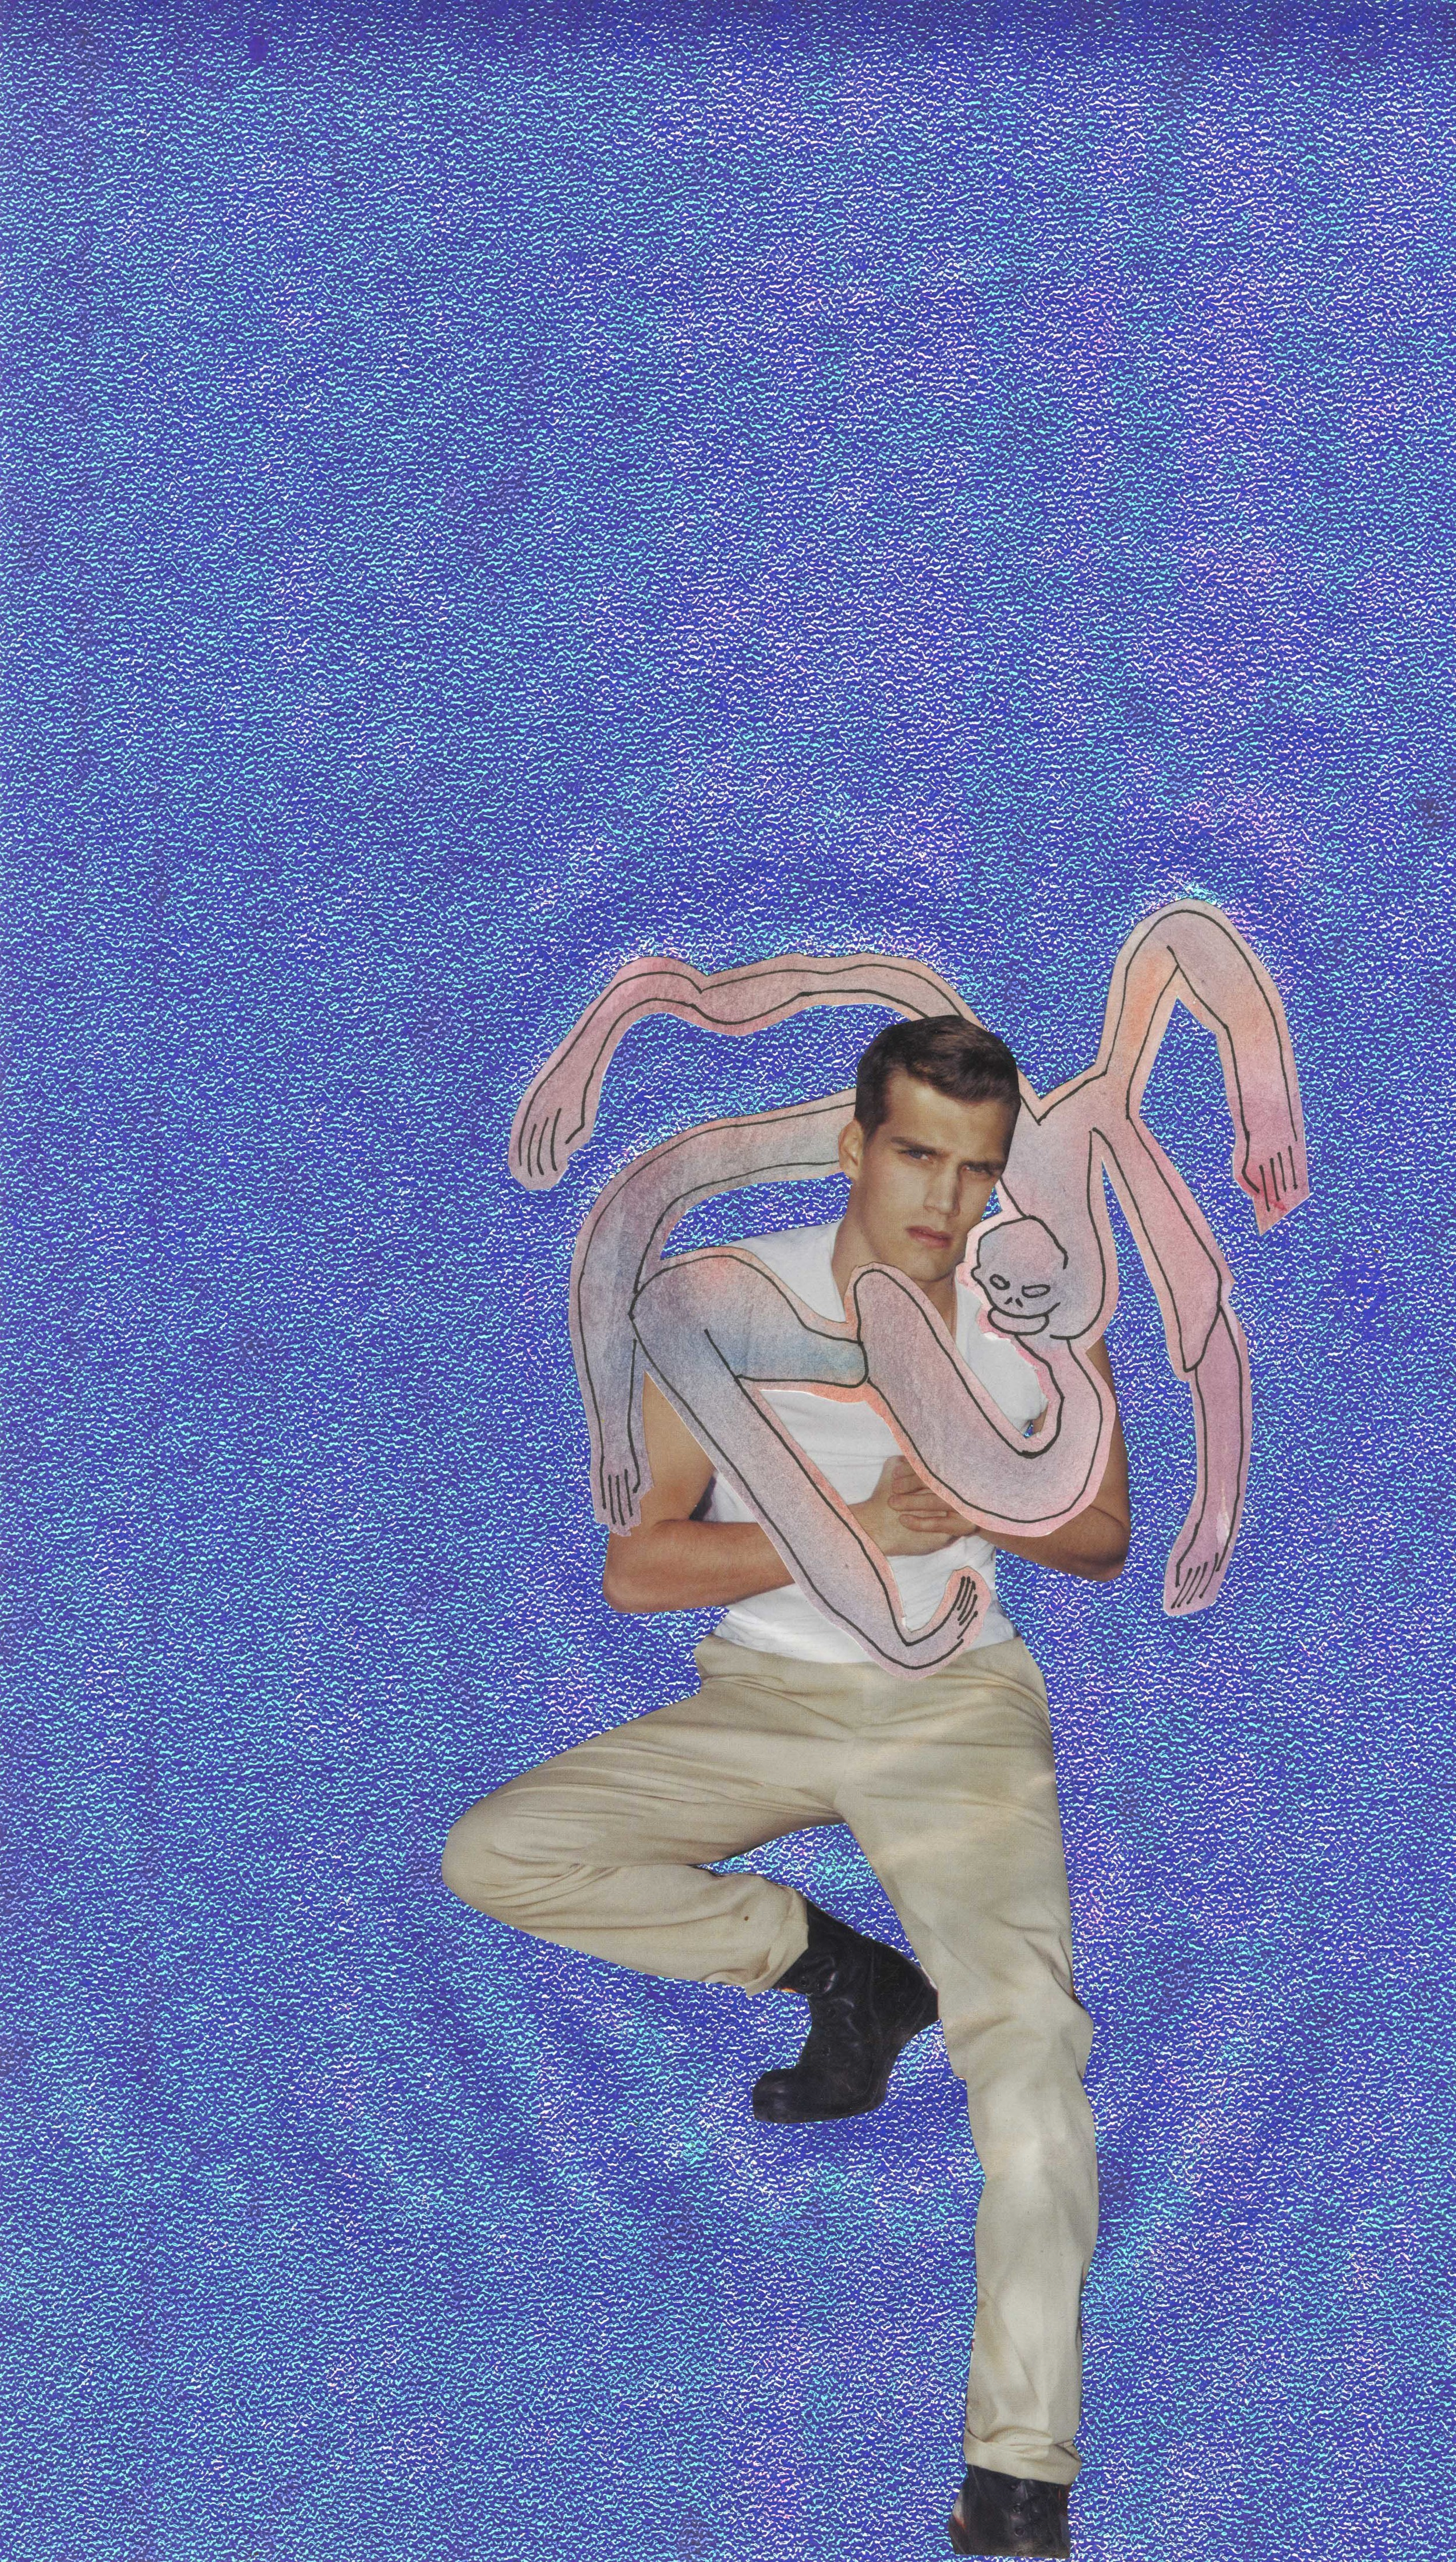 Be My Boyfriend  , 2013 watercolor and collage on paper 18 x 8 inches Private Collection, New York